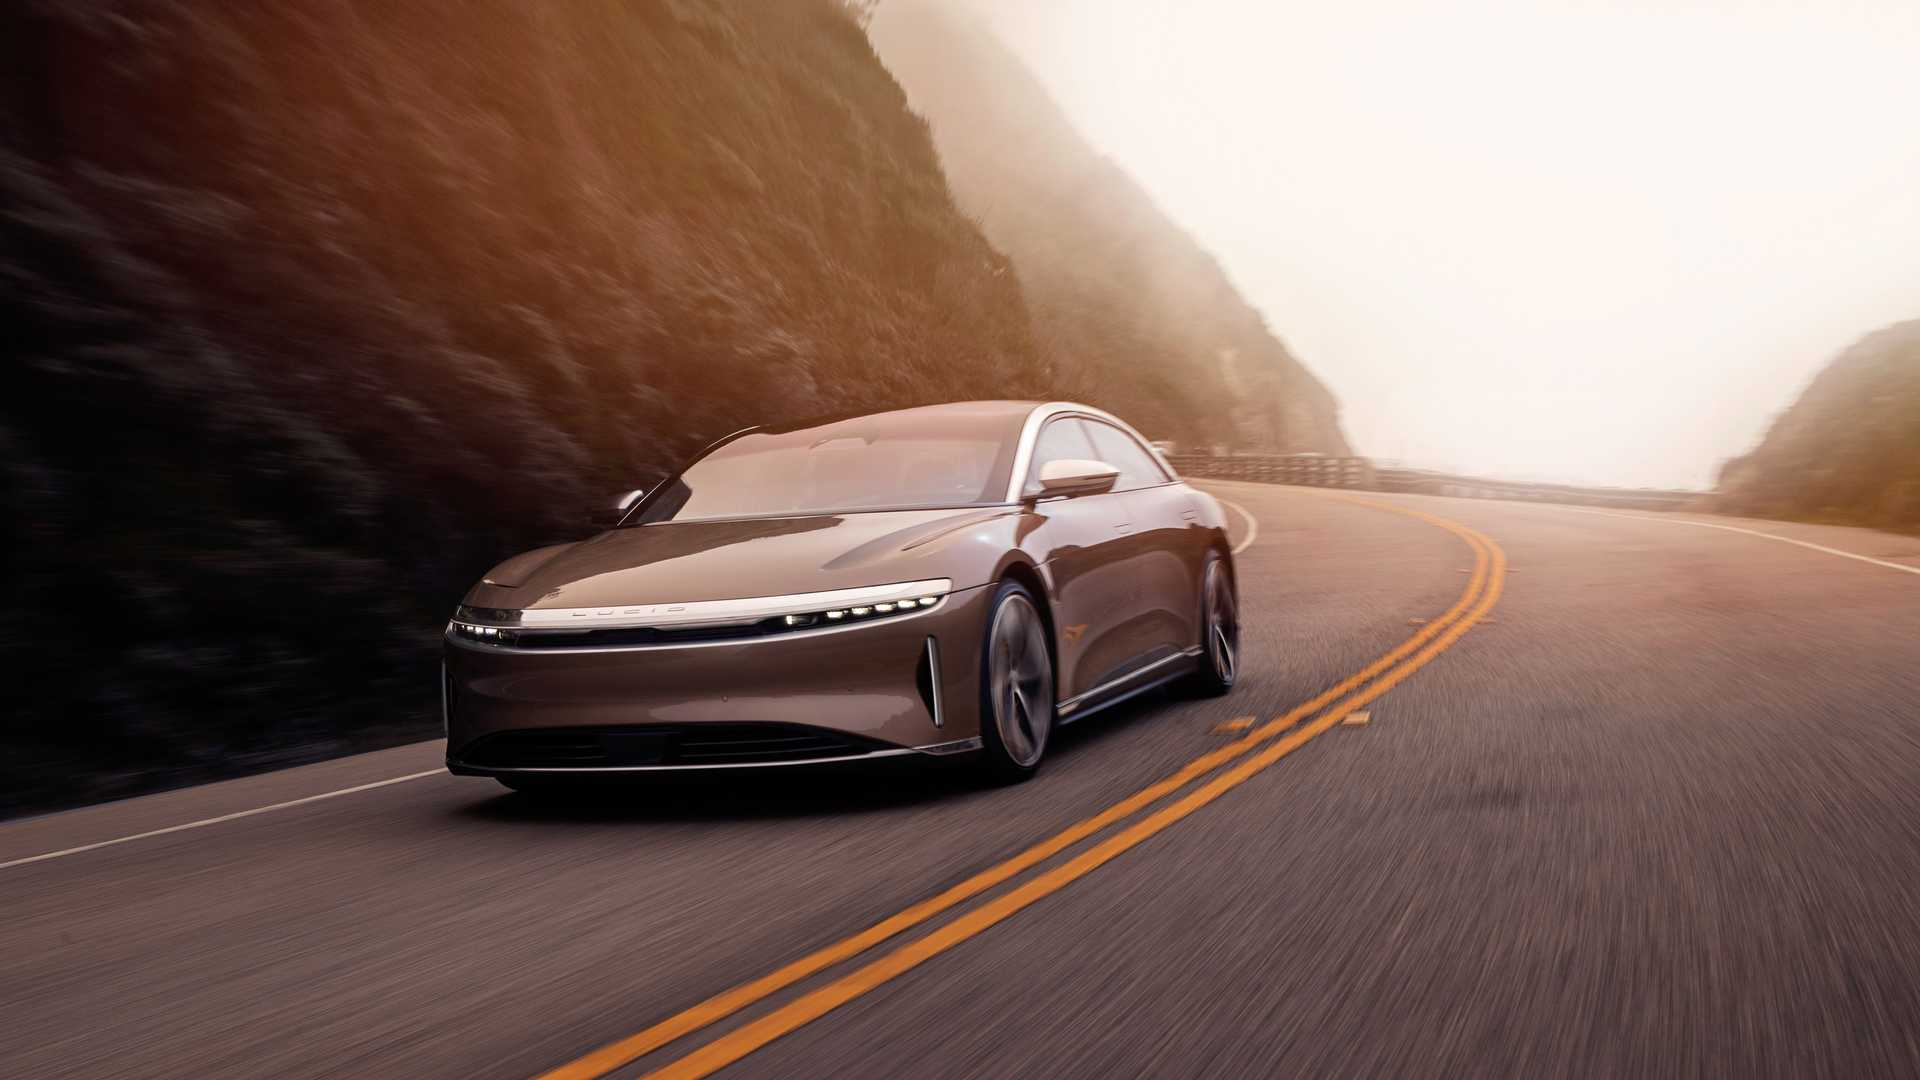 The Tesla Model S Long Range had long held the title of North America's farthest-traveling battery car with 652 kilometers (405 miles) of EPA-rated range, but the new Lucid Air Dream Edition Range dethroned it quite decisively.